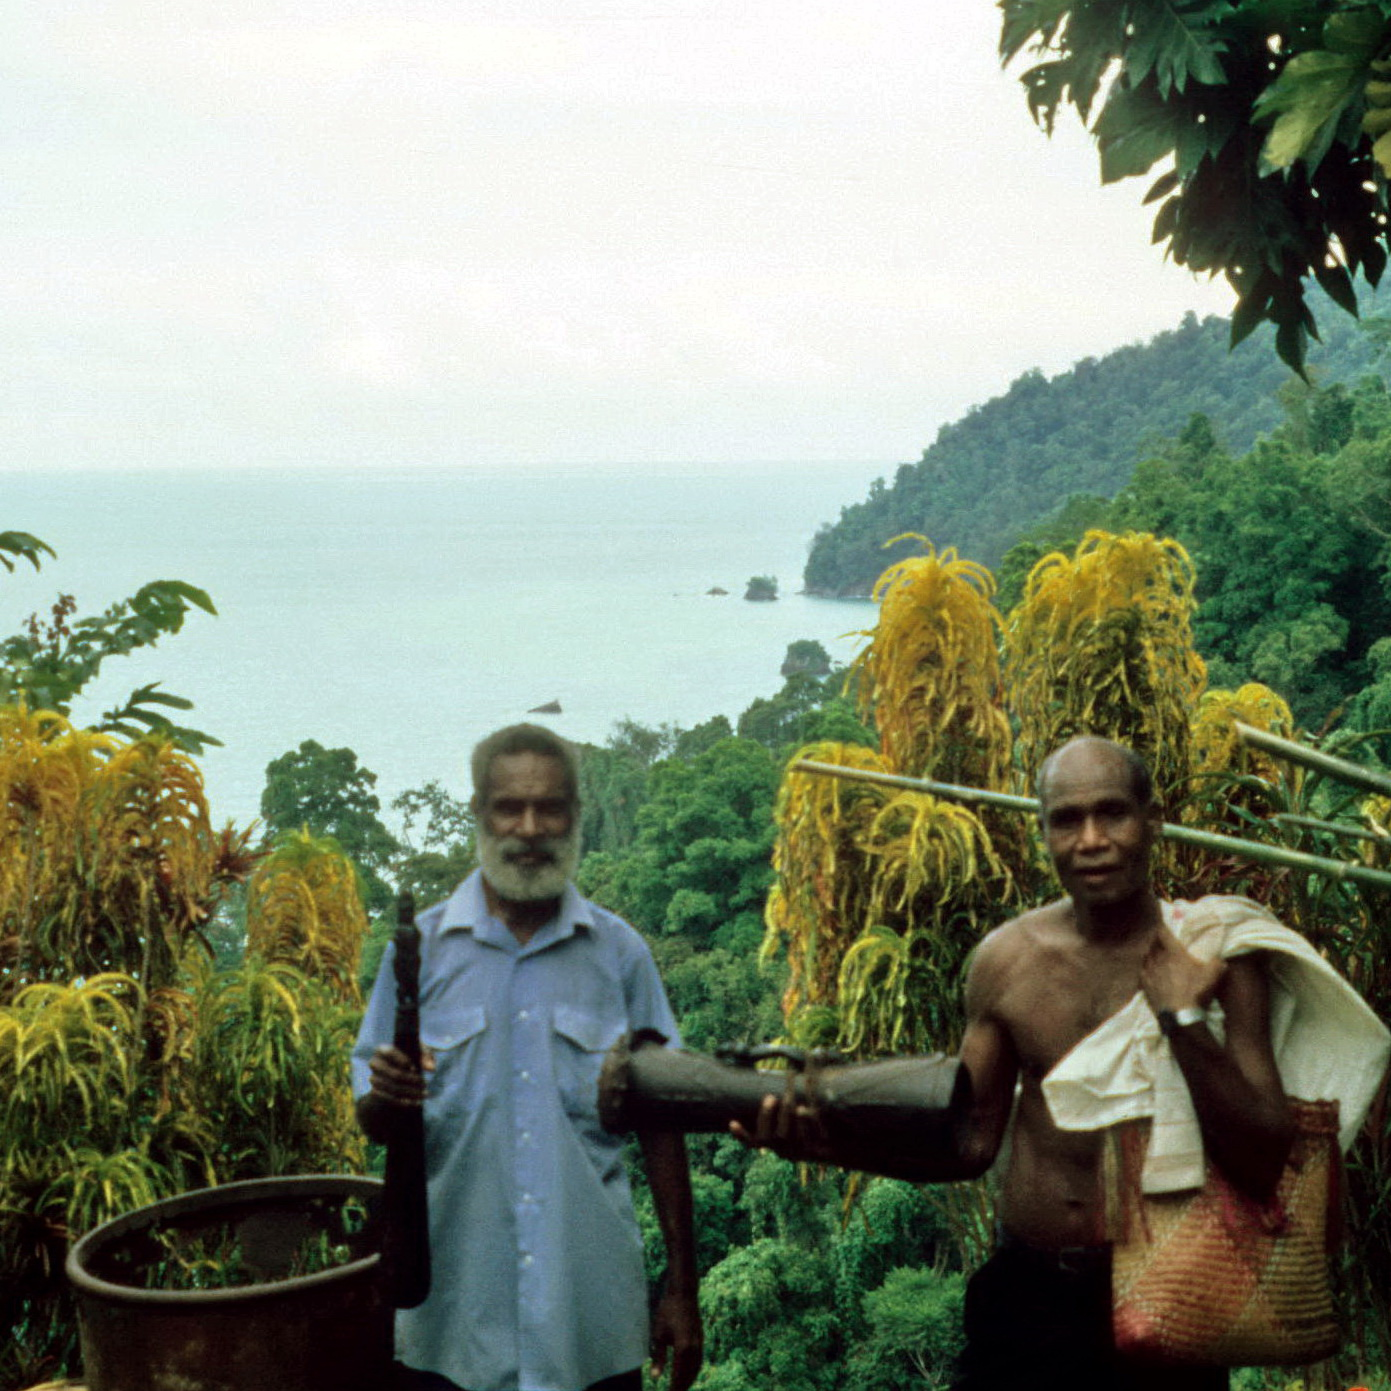 The infamous Alois Jim on the right, Kairiru Island, Papua New Guinea.  For all his shenanigans he did find some good things over the years.  Circa 1999.